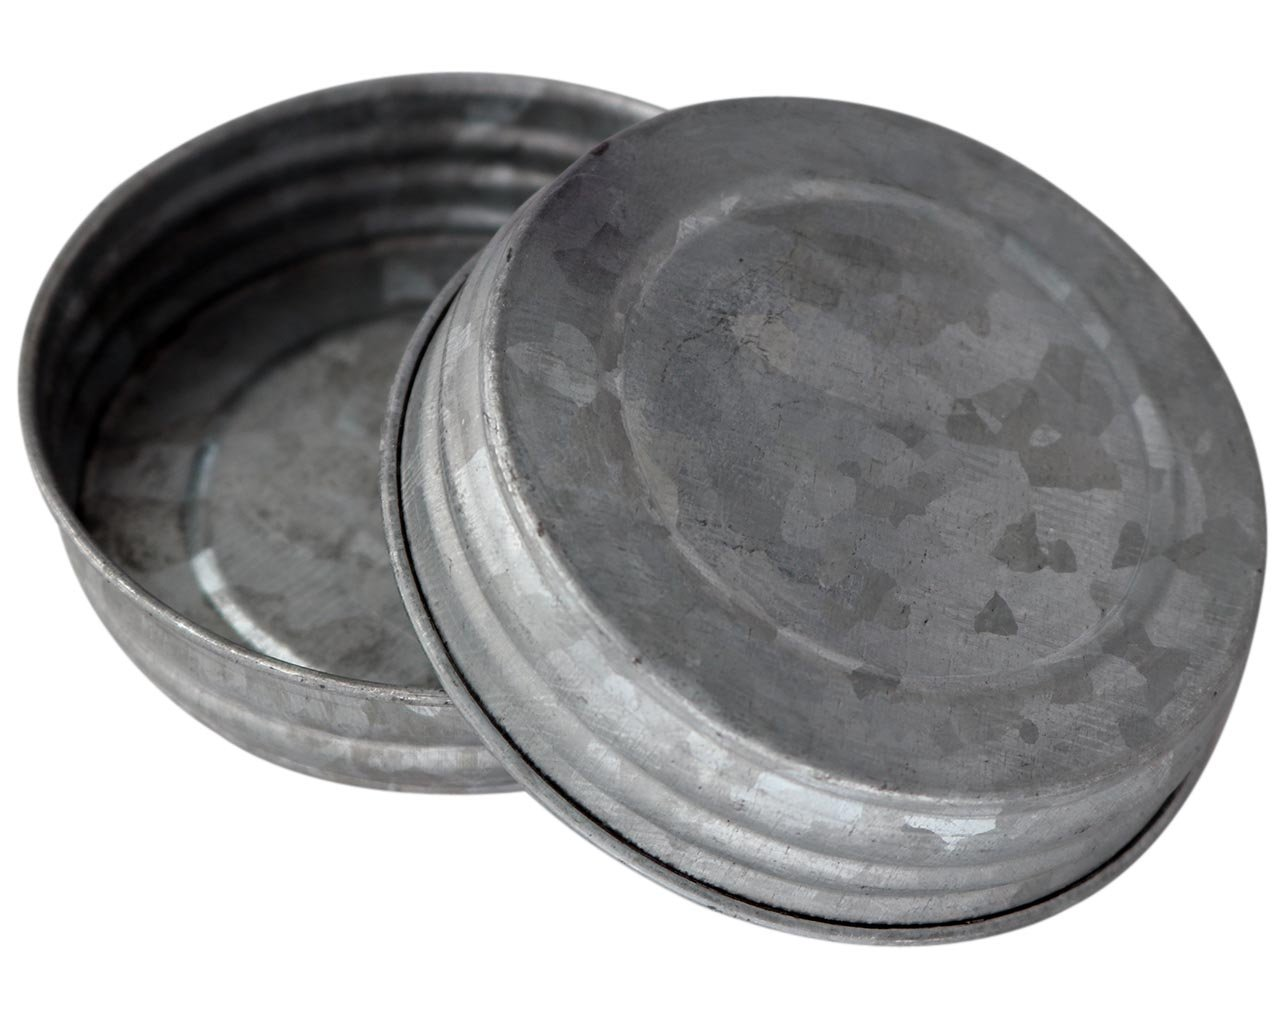 Galvanized Vintage Reproduction Lids for Mason, Ball, Canning Jars (4 Pack, Wide Mouth)